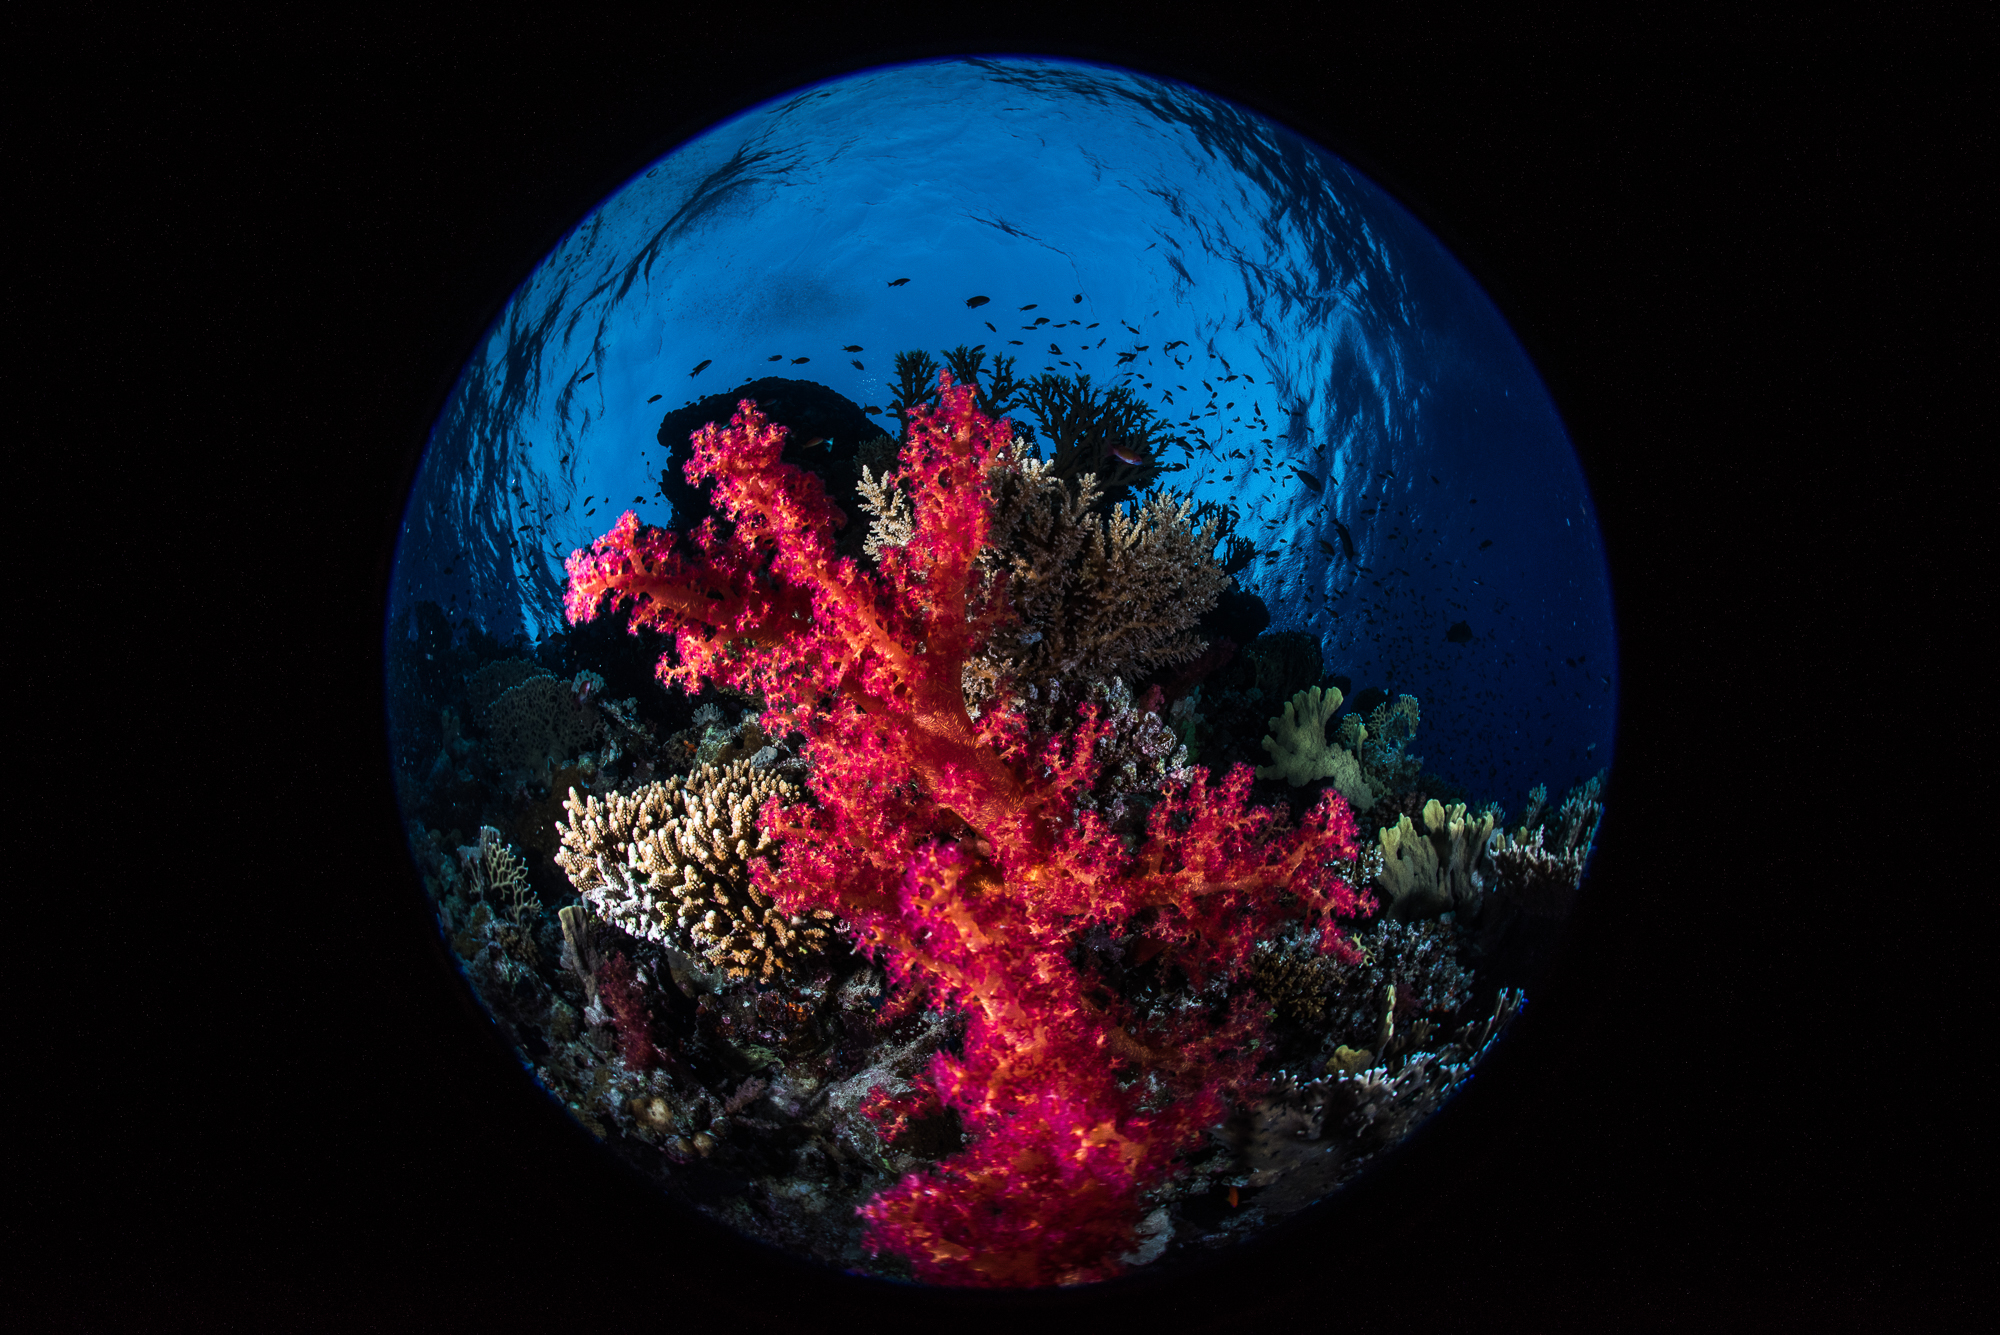 THE RED SEA PROJECT